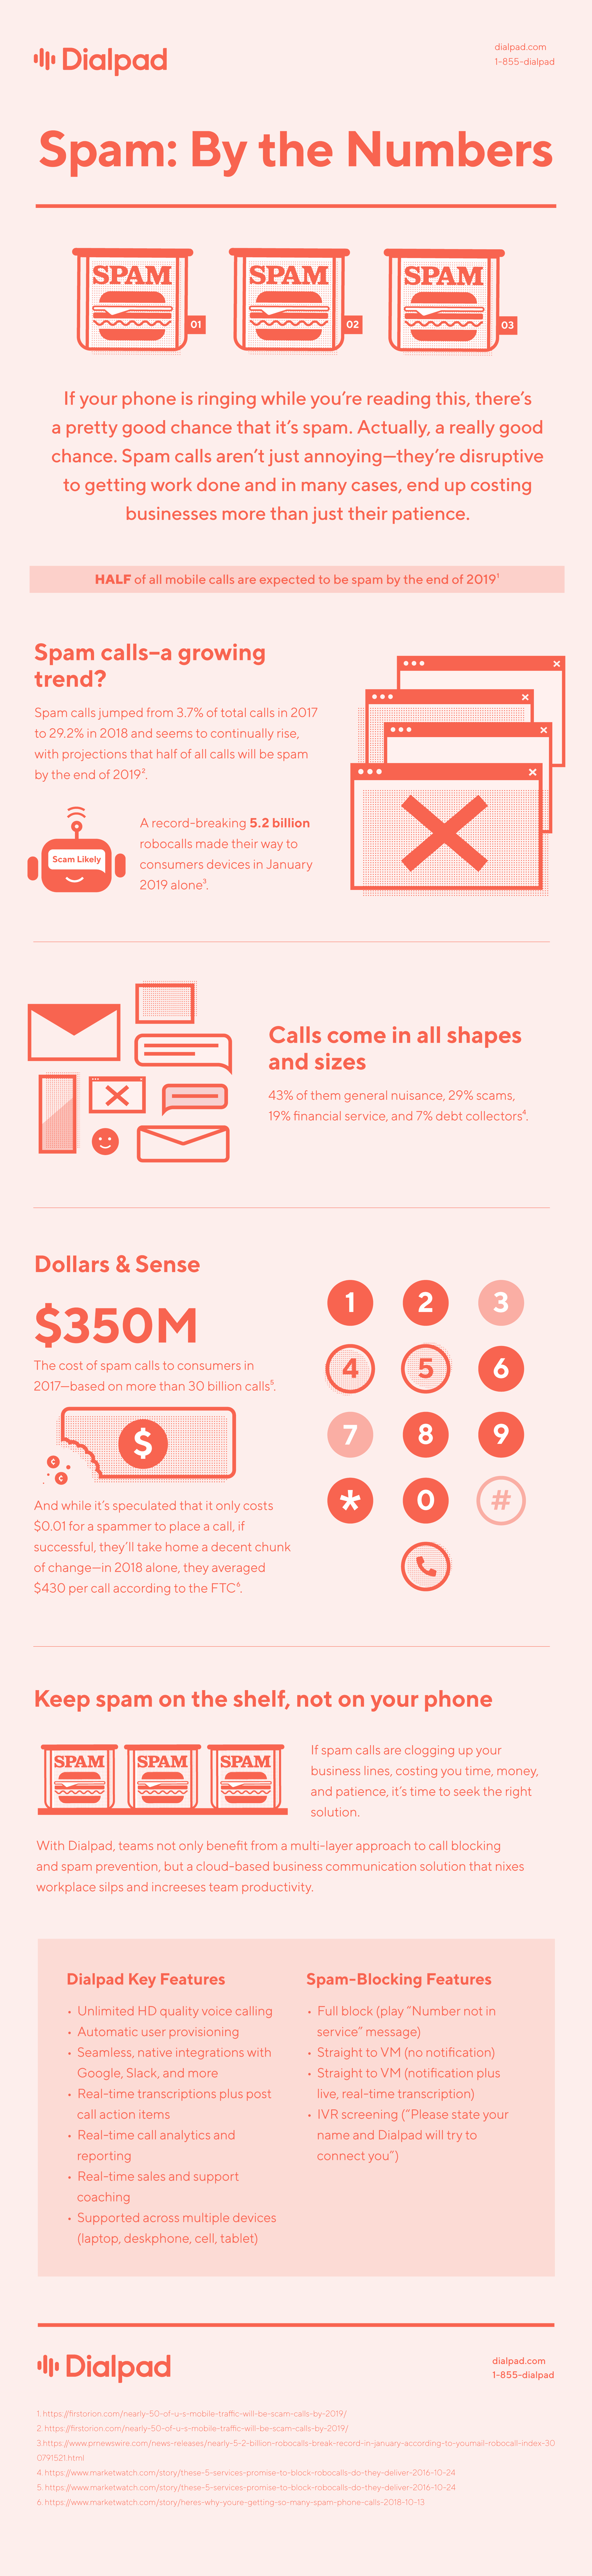 Spam Calls by the Numbers Infographic | Dialpad